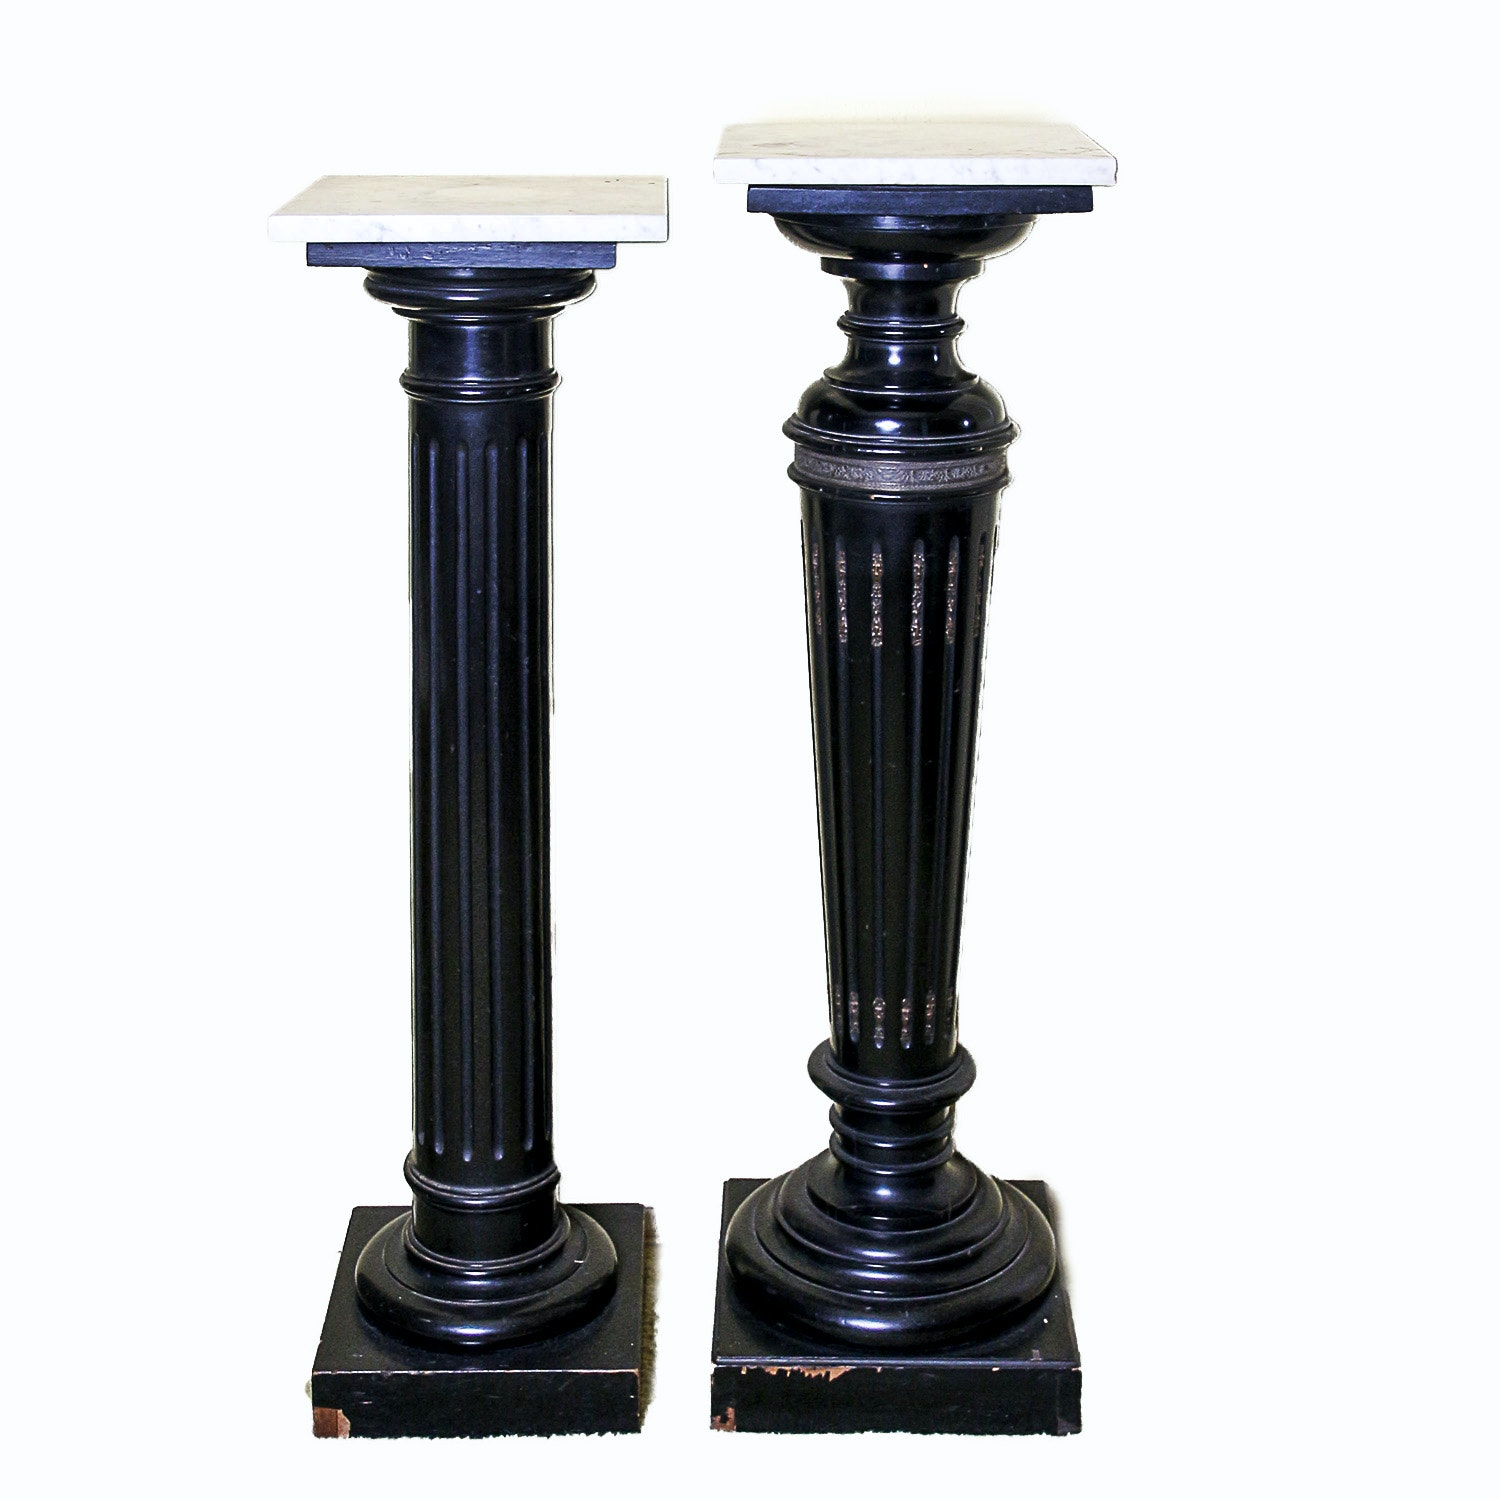 Vintage Neoclassical Style Pedestals